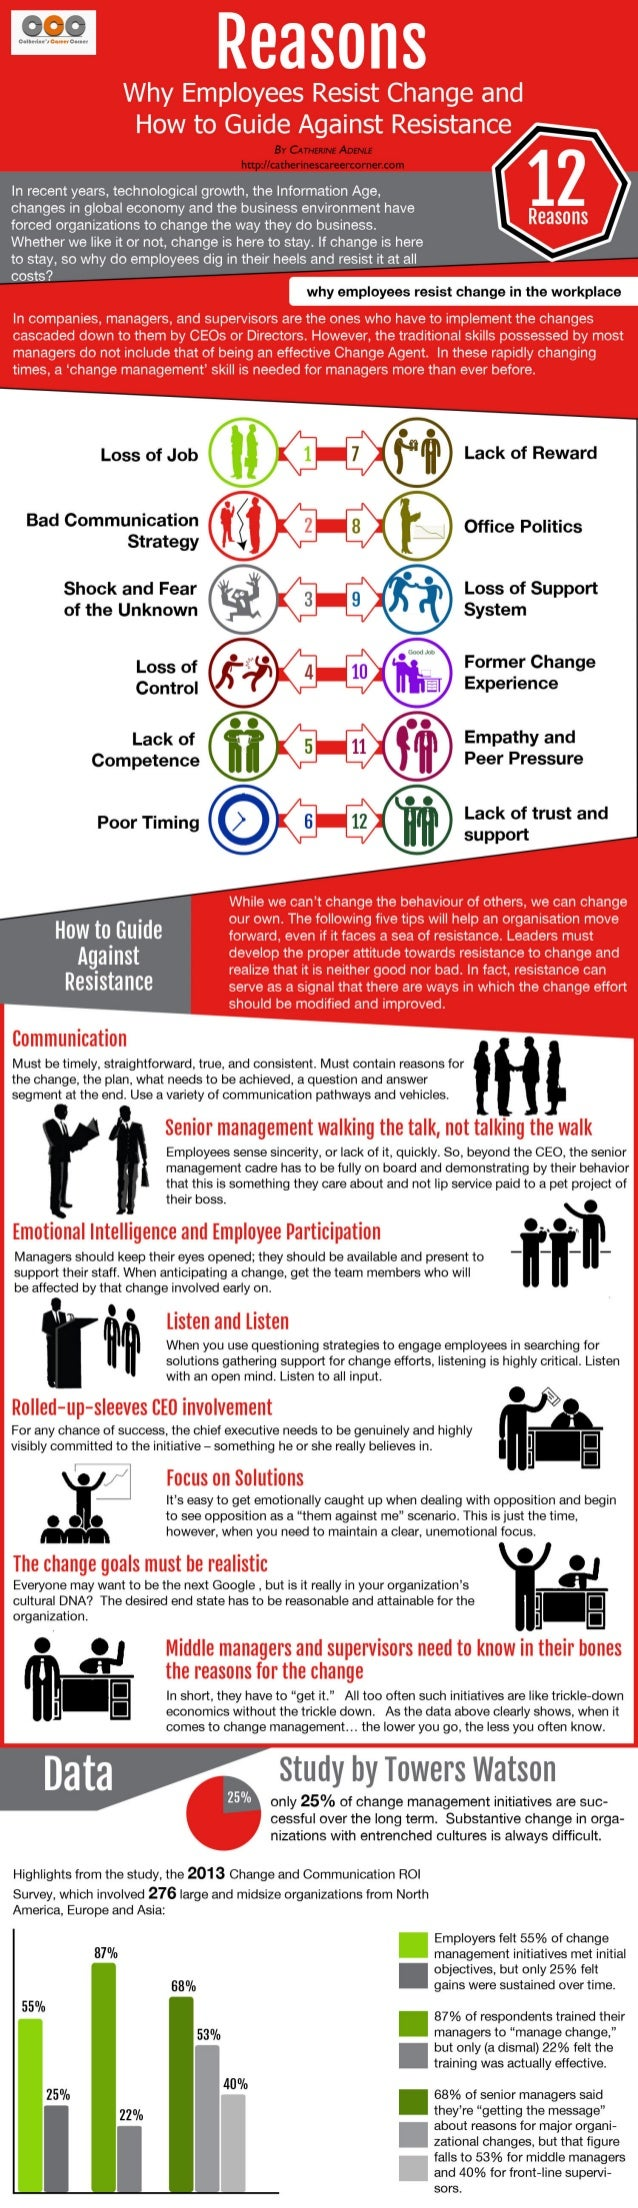 Reasons Why Employees Resist Change (Infographic)